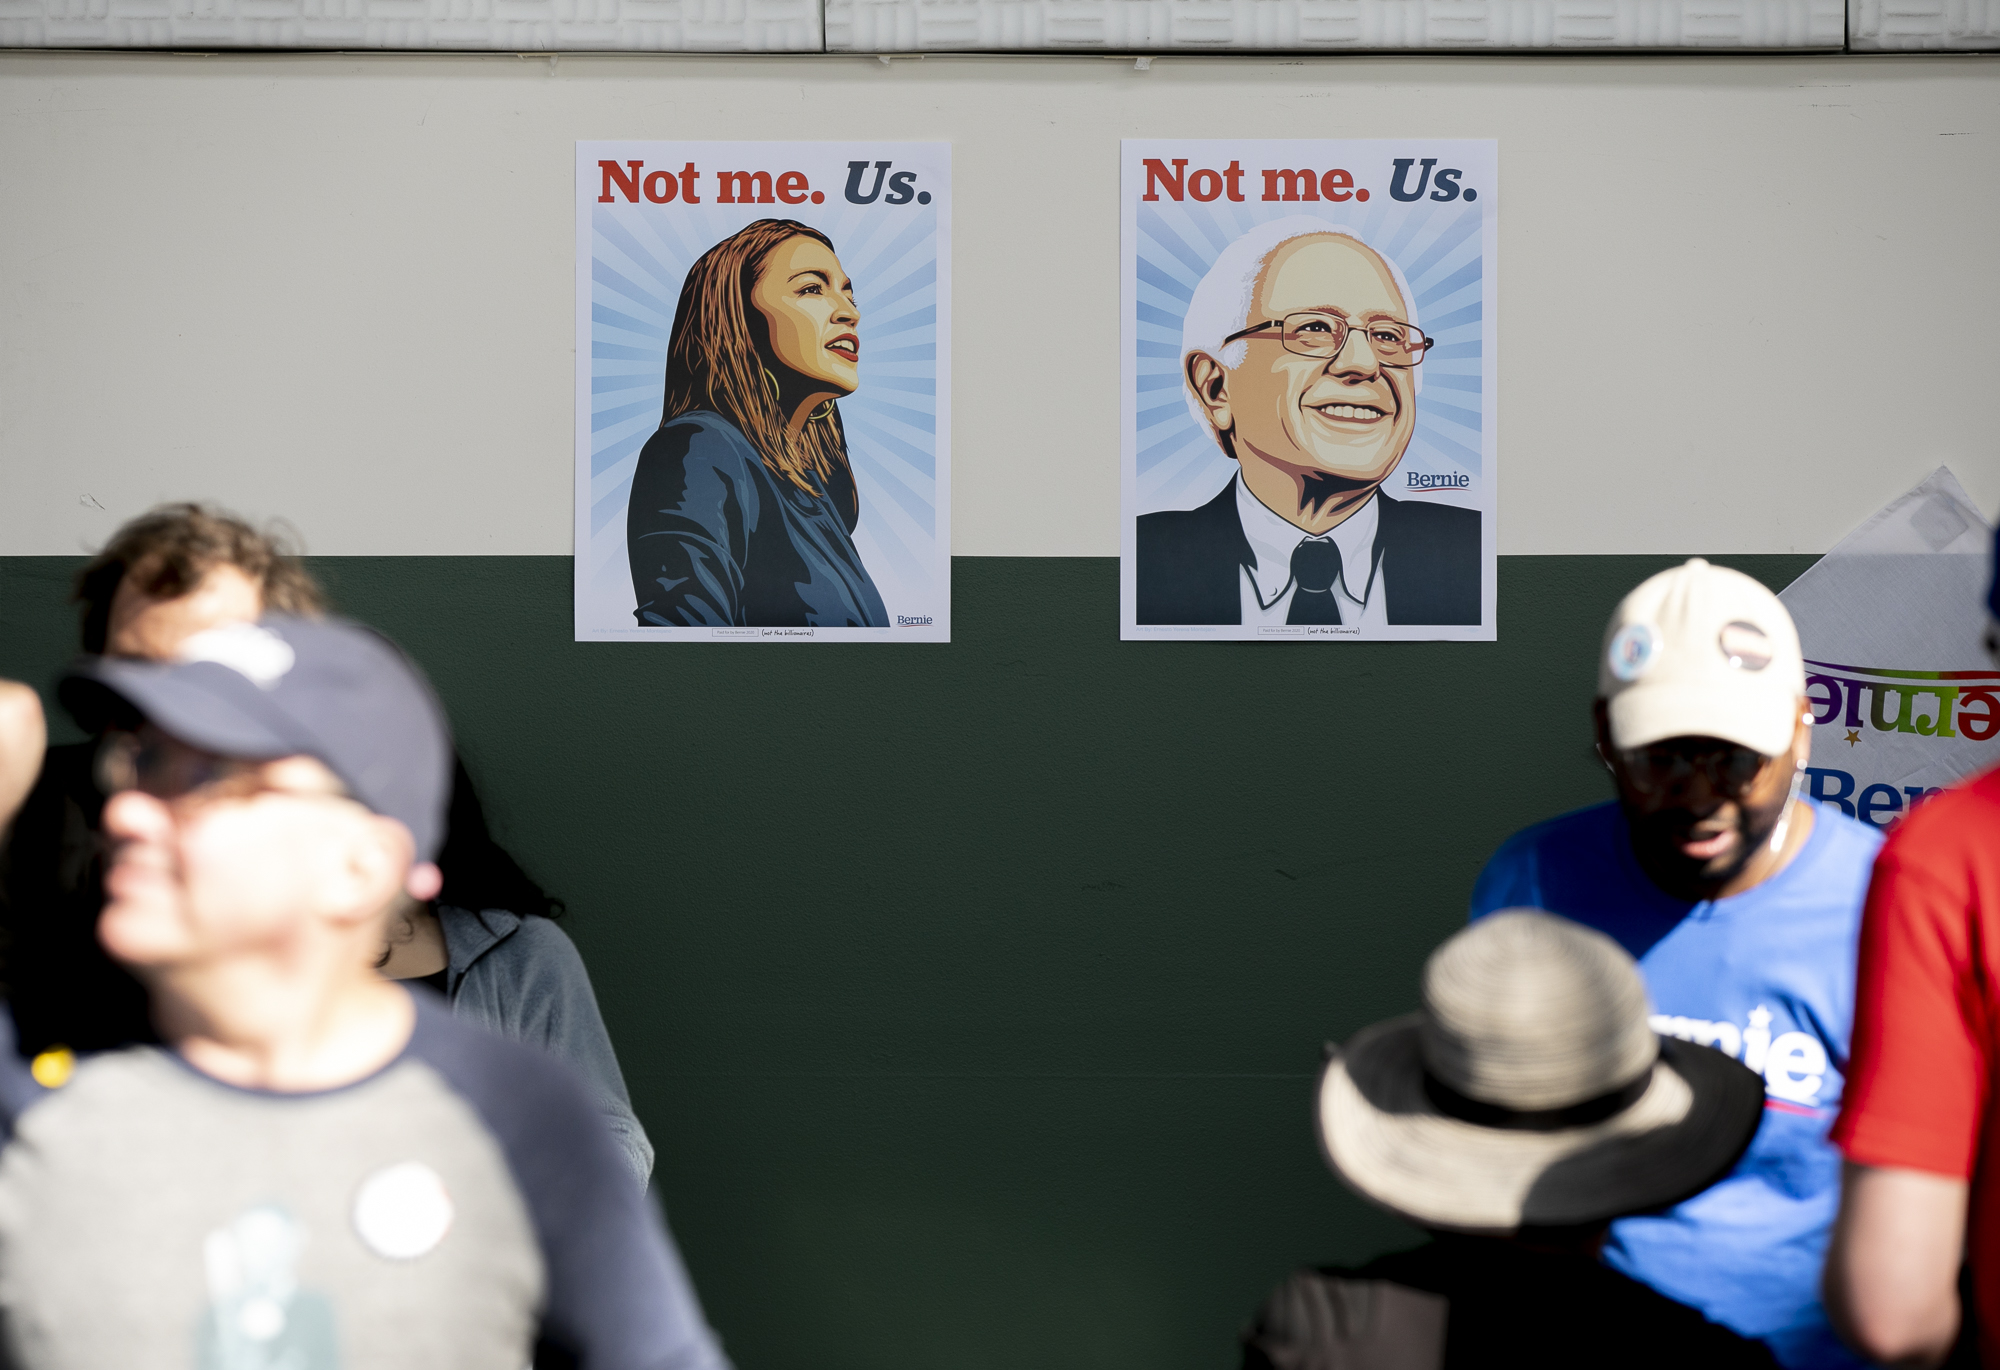 Posters of U.S. Representative Alexandria Ocasio-Cortez and democratic presidential candidate Bernie Sanders at a Sanders campaign rally in Richmond, CA, on February 17, 2020. Photo by Anne Wernikoff for CalMatters